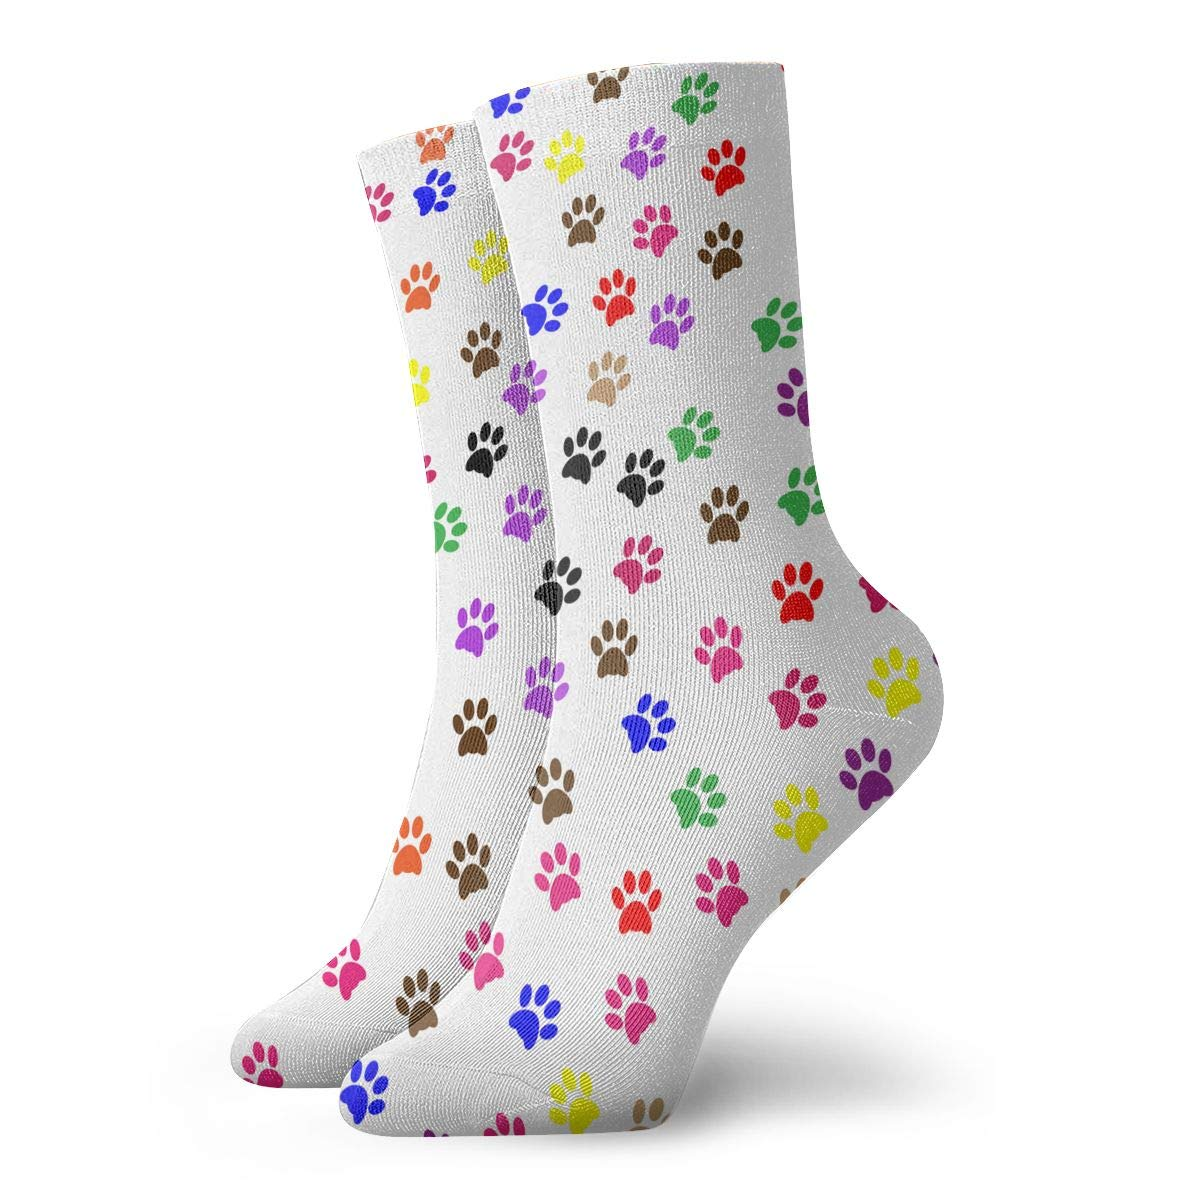 Colorful Dog Paw Print Unisex Funny Casual Crew Socks Athletic Socks For Boys Girls Kids Teenagers